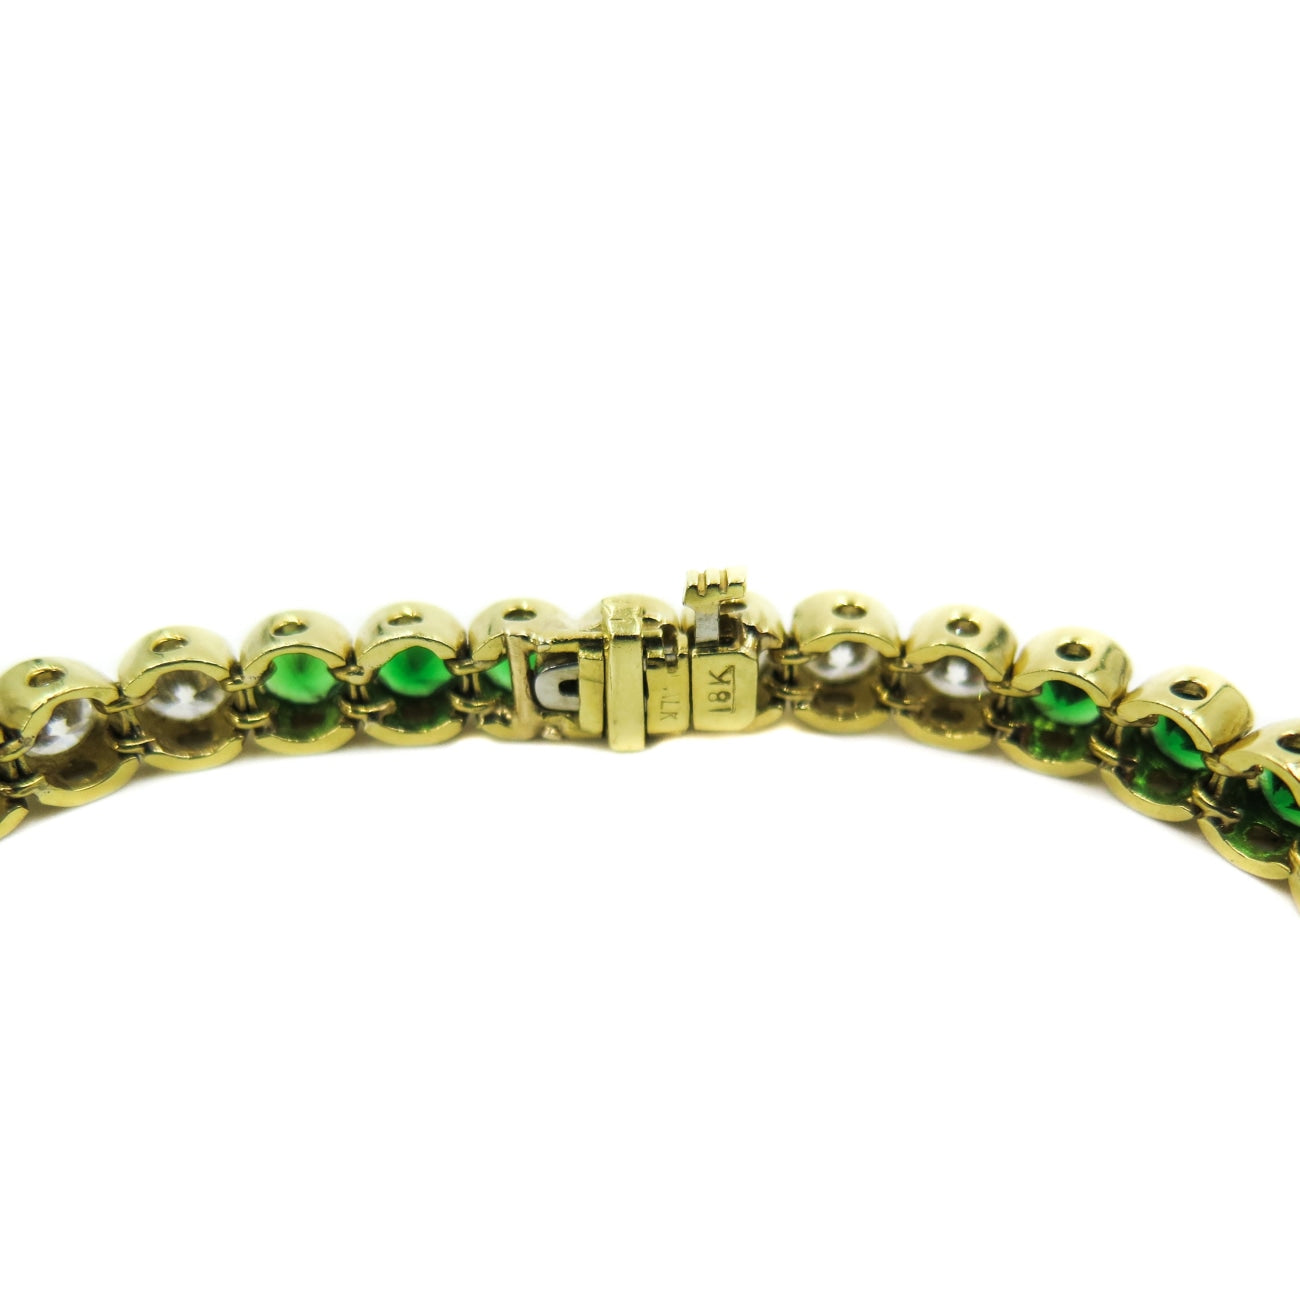 Estate Jewelry Estate Jewelry - Tsavorite and Diamond Yellow Gold Tennis Bracelet | Manfredi Jewels